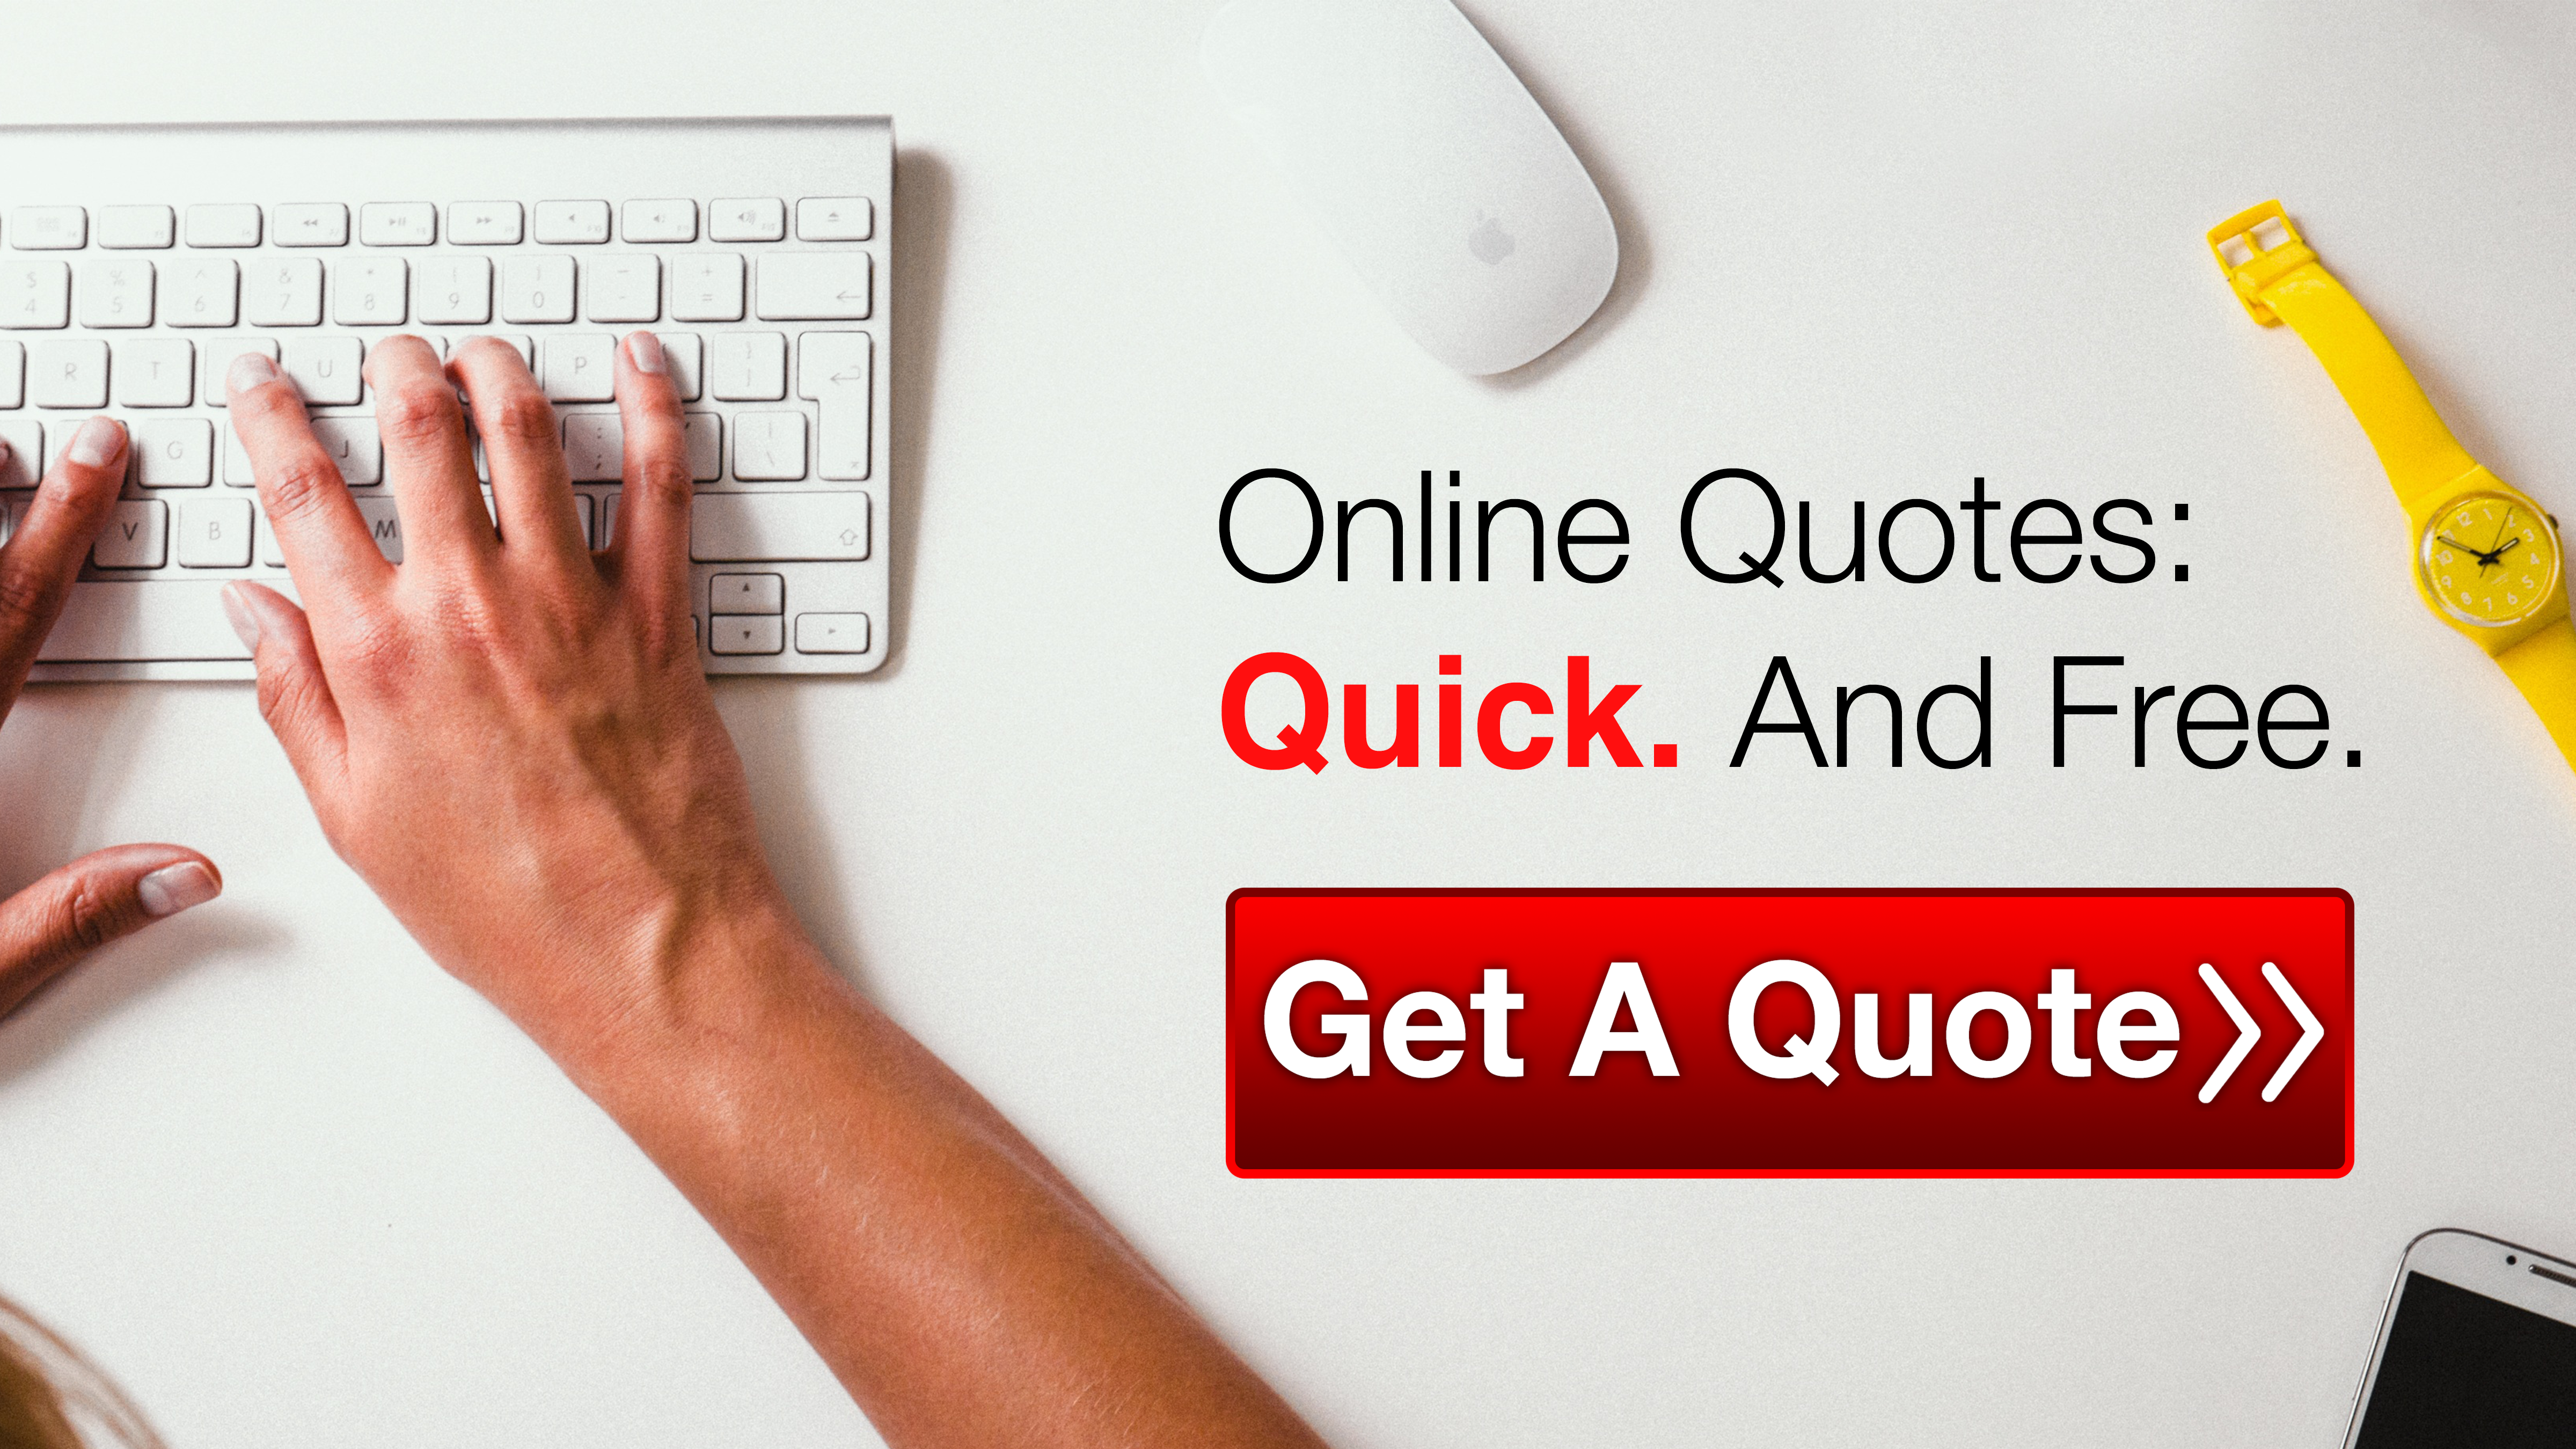 Get A Quote Slidedeck Image